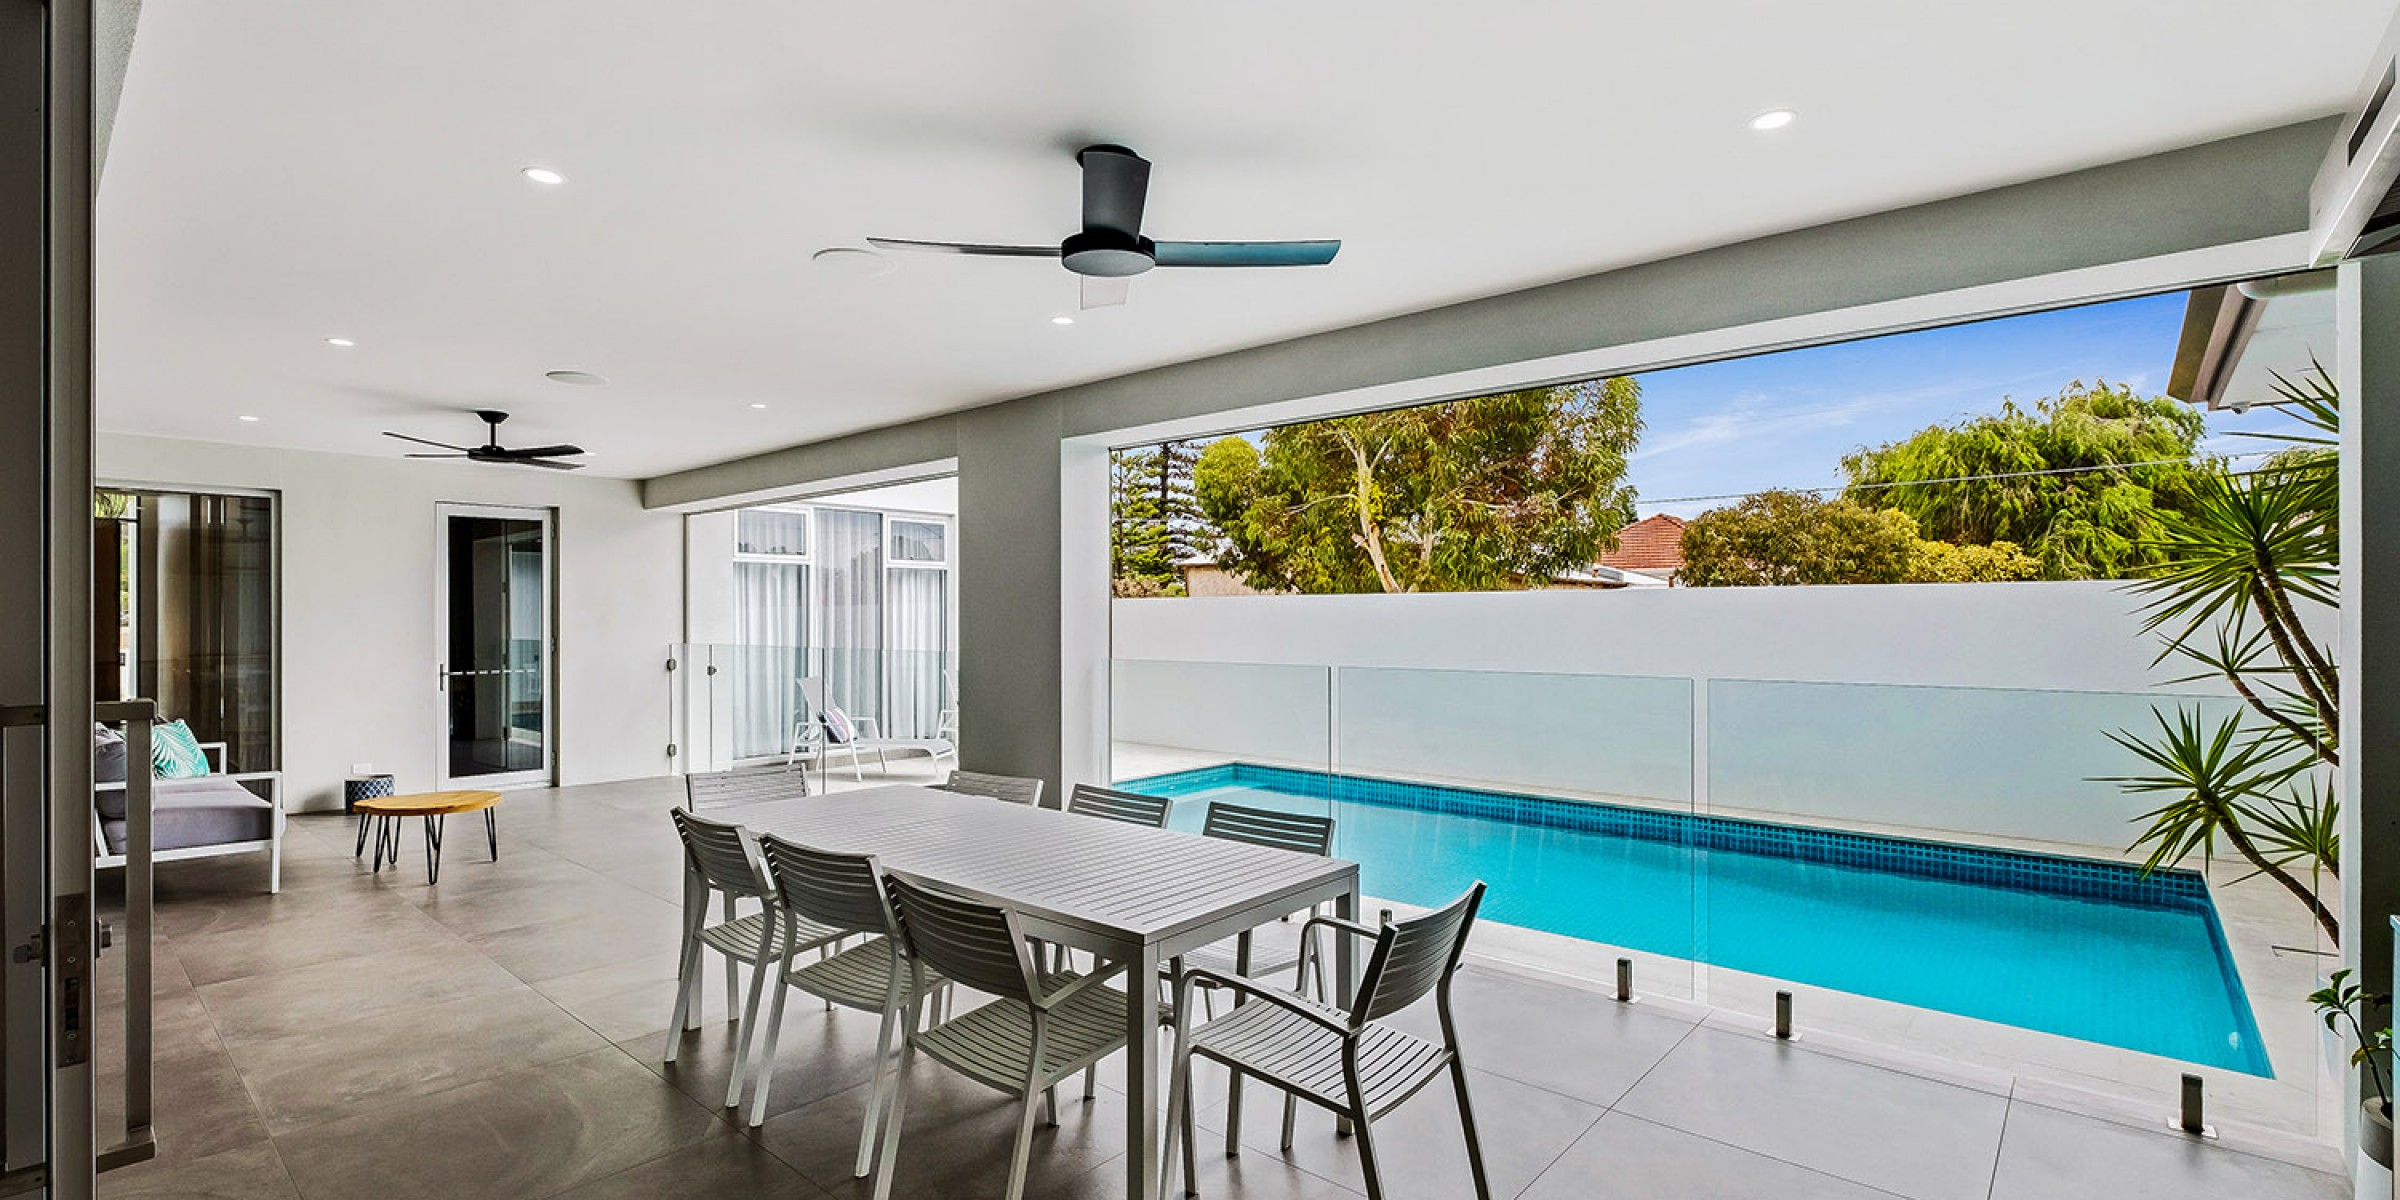 Photo of architecturally designed project at East Terrace Residence, Henley Beach